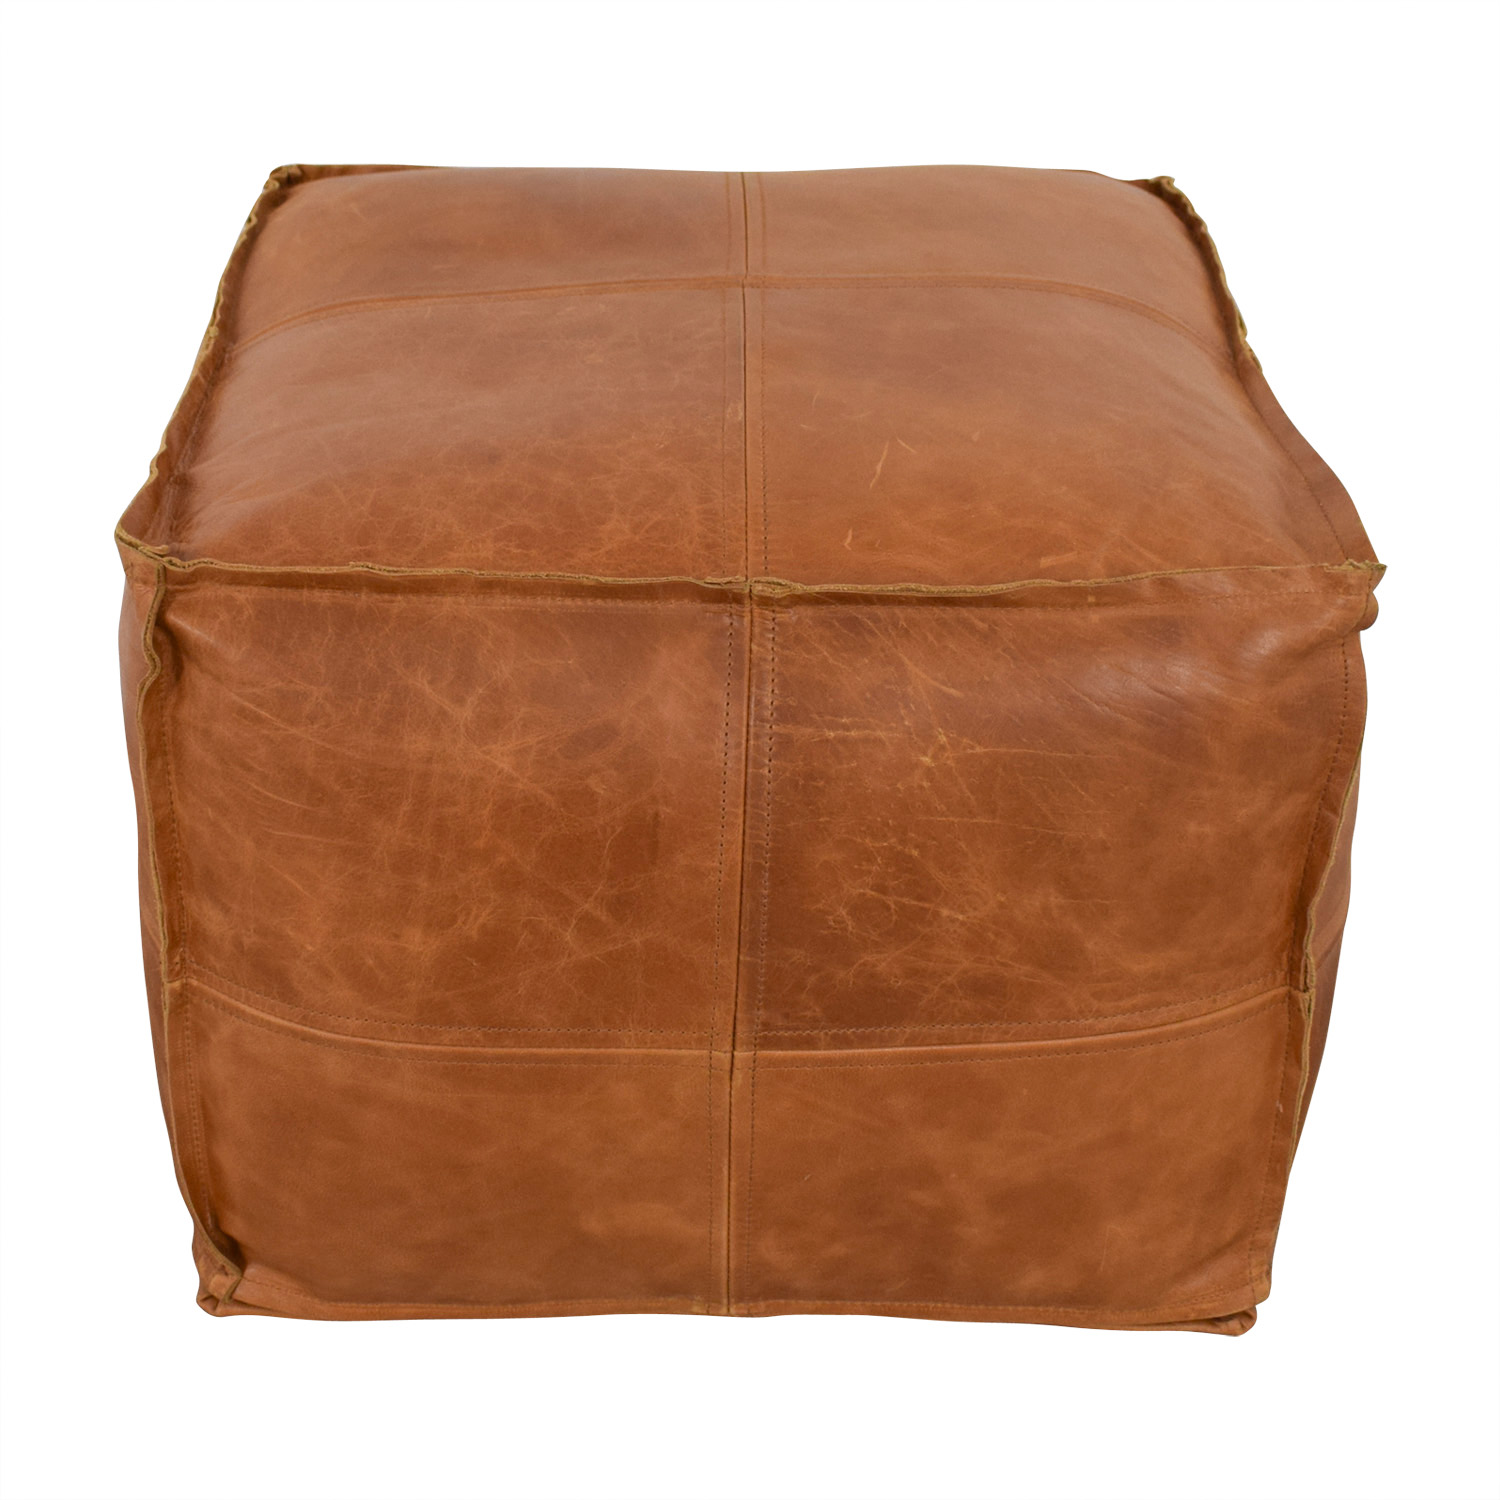 CB2 Saddle Brown Leather Pouf / Chairs